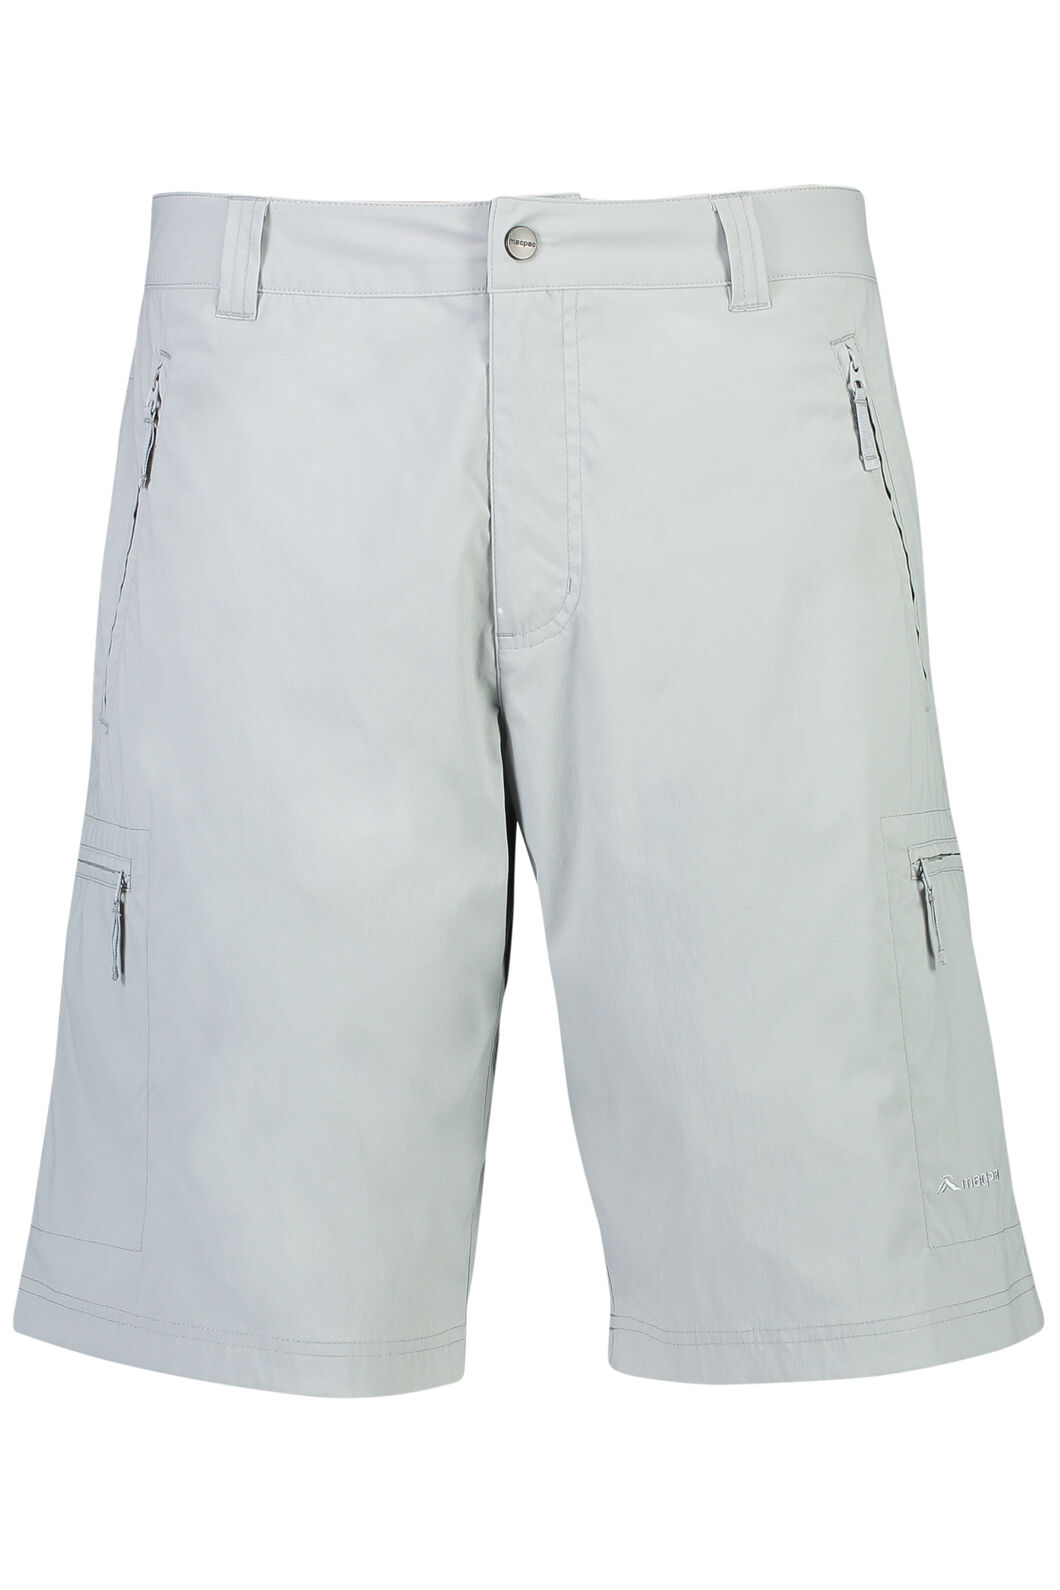 Macpac Drift Shorts - Men's, Monument, hi-res